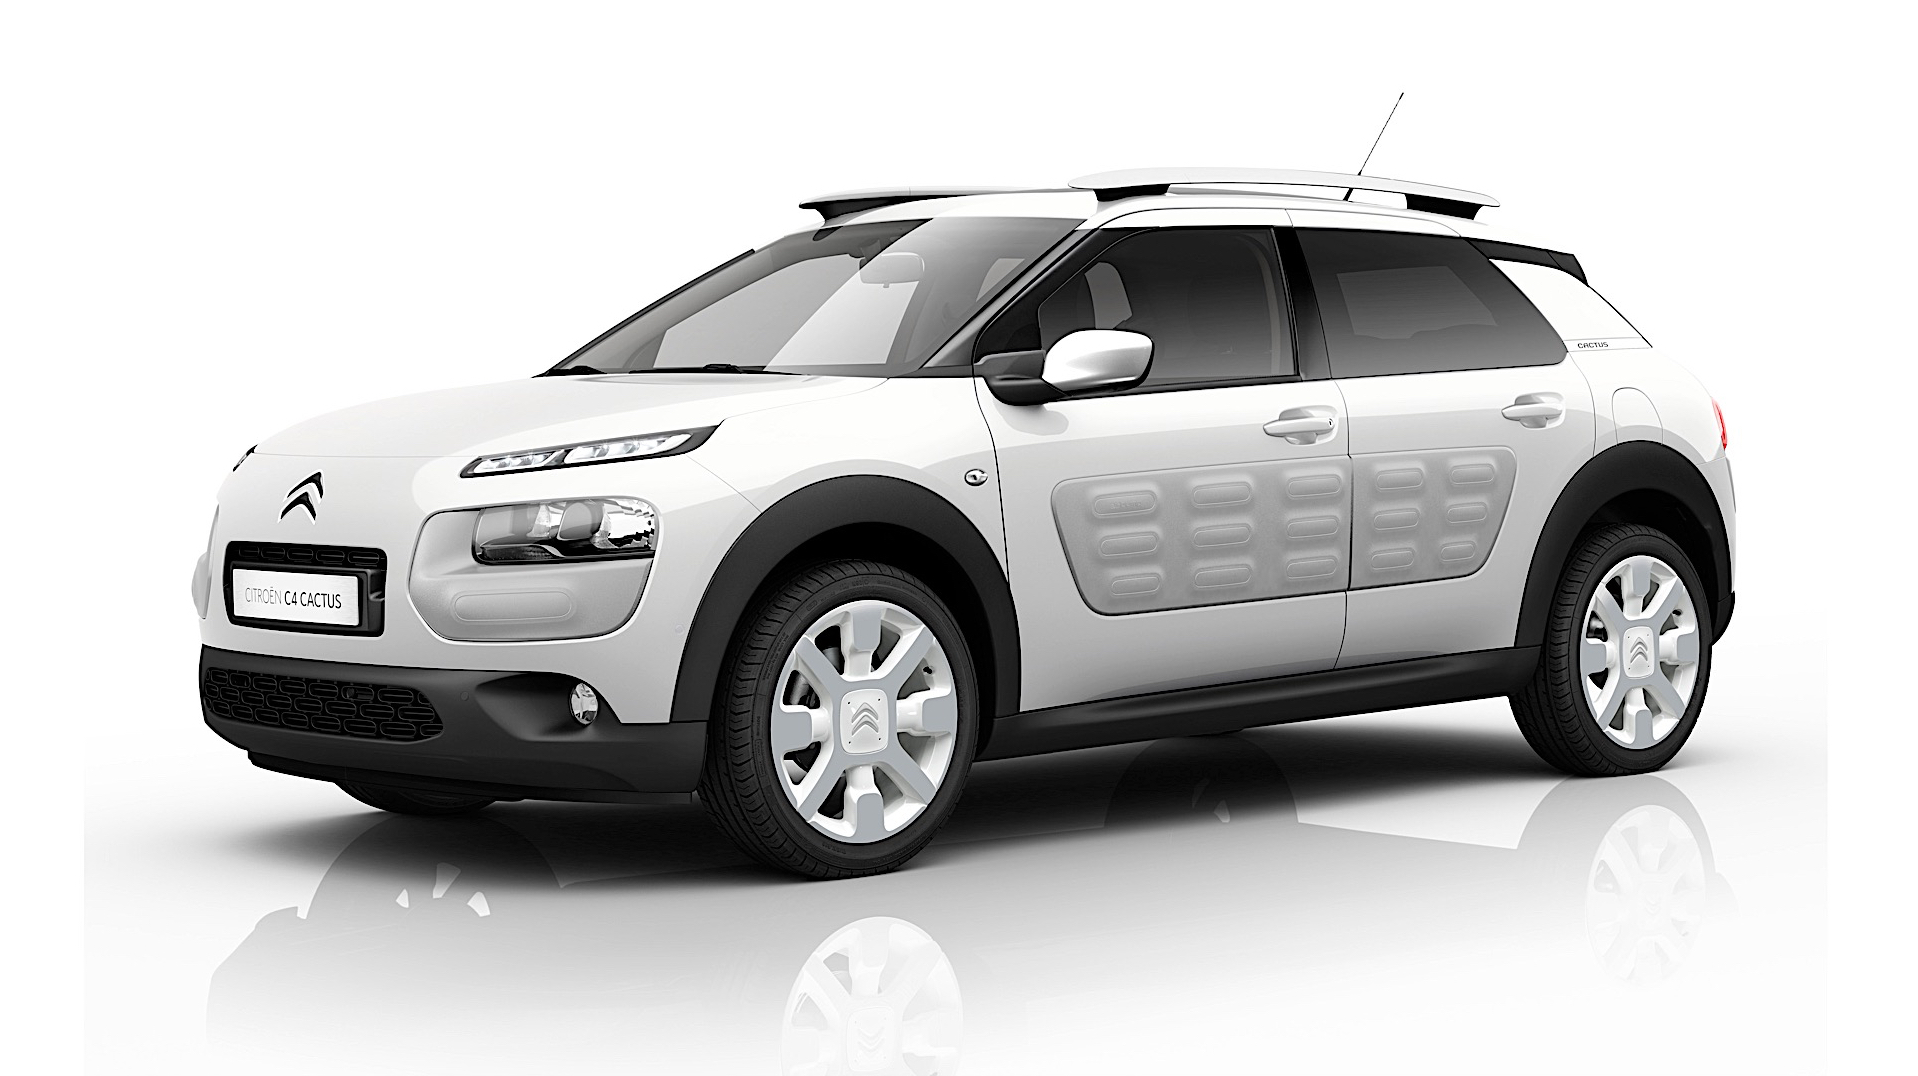 citroen c4 cactus gets special edition called w available only in the uk autoevolution. Black Bedroom Furniture Sets. Home Design Ideas